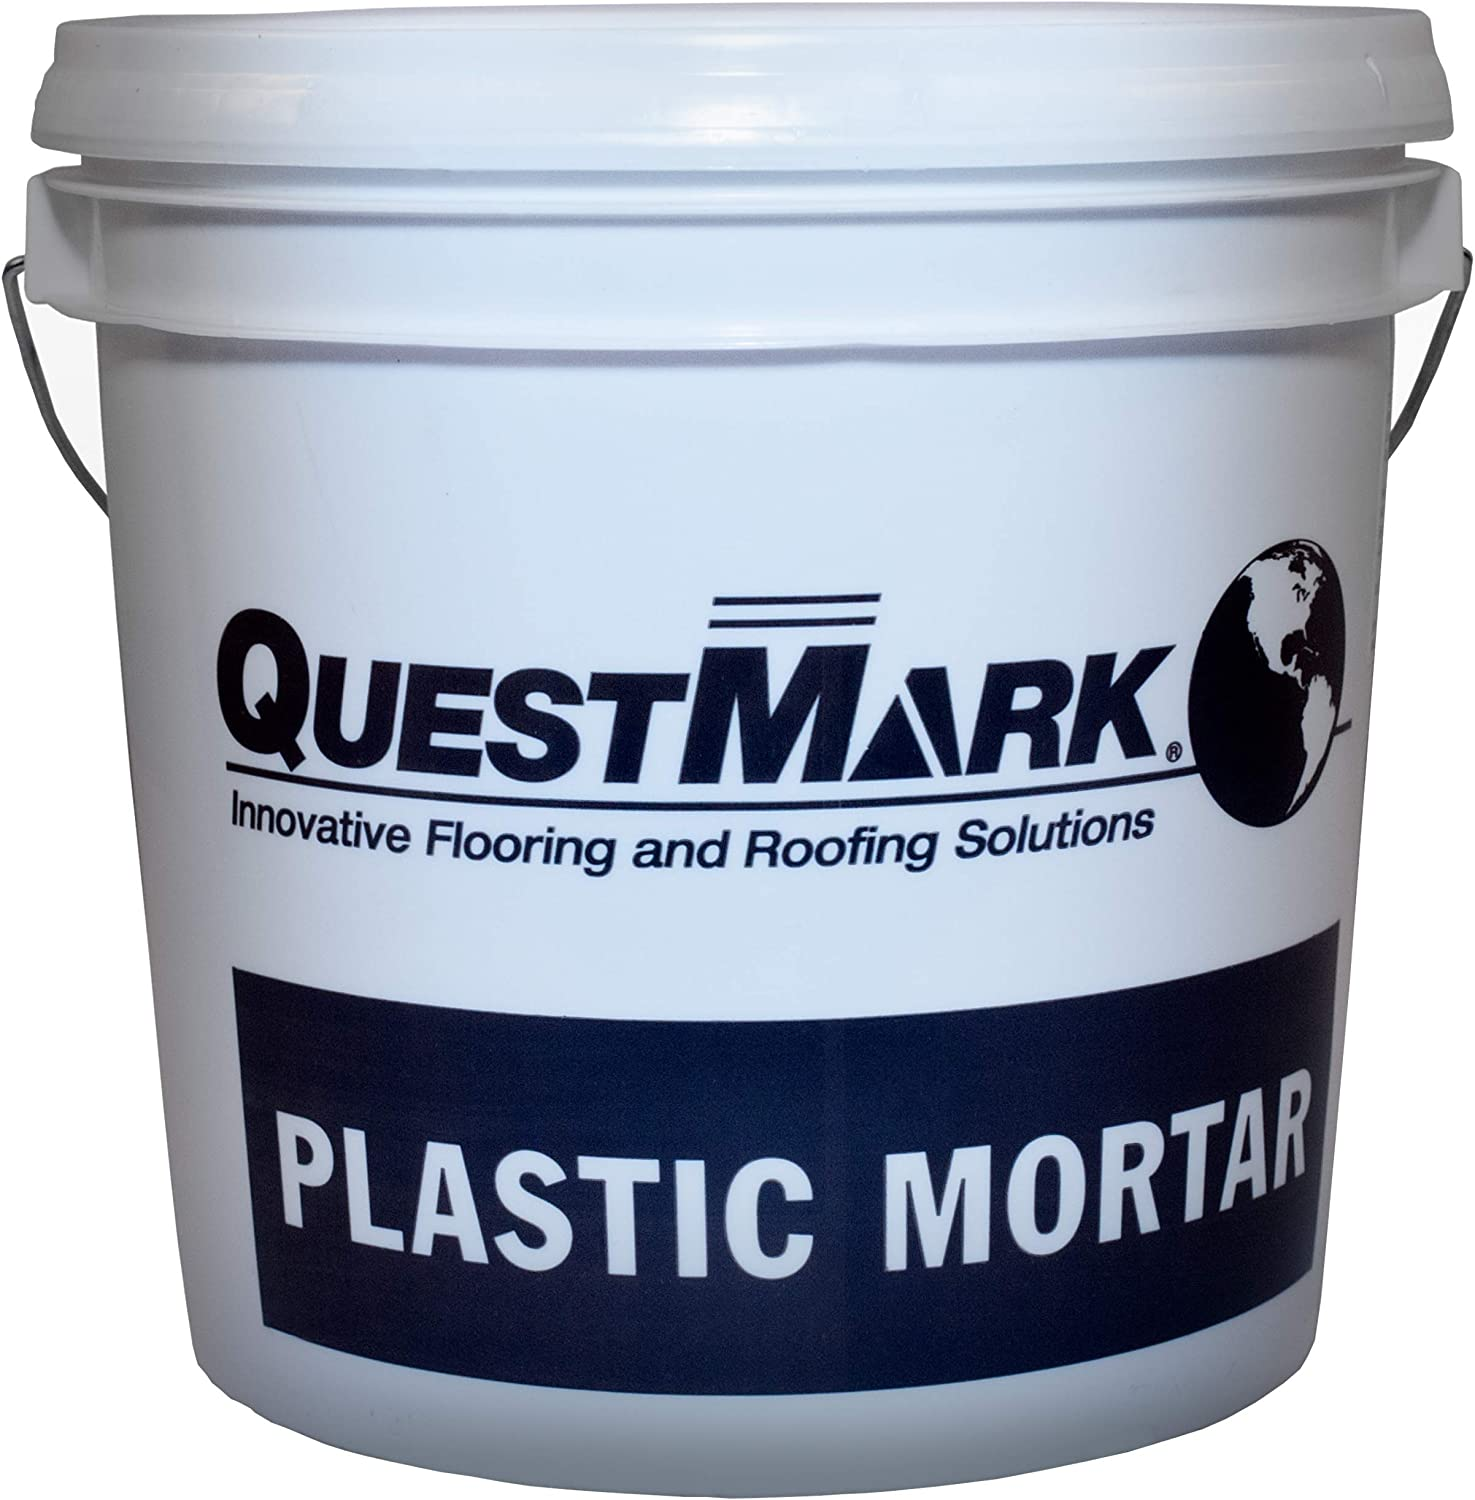 QuestMark 2123 Food Formulation Epoxy Concrete Patch, 2 Gallon, Red - Three Component 100% Solids Mortar - Fill Cracks and Holes in USDA Federally Inspected Food Plants